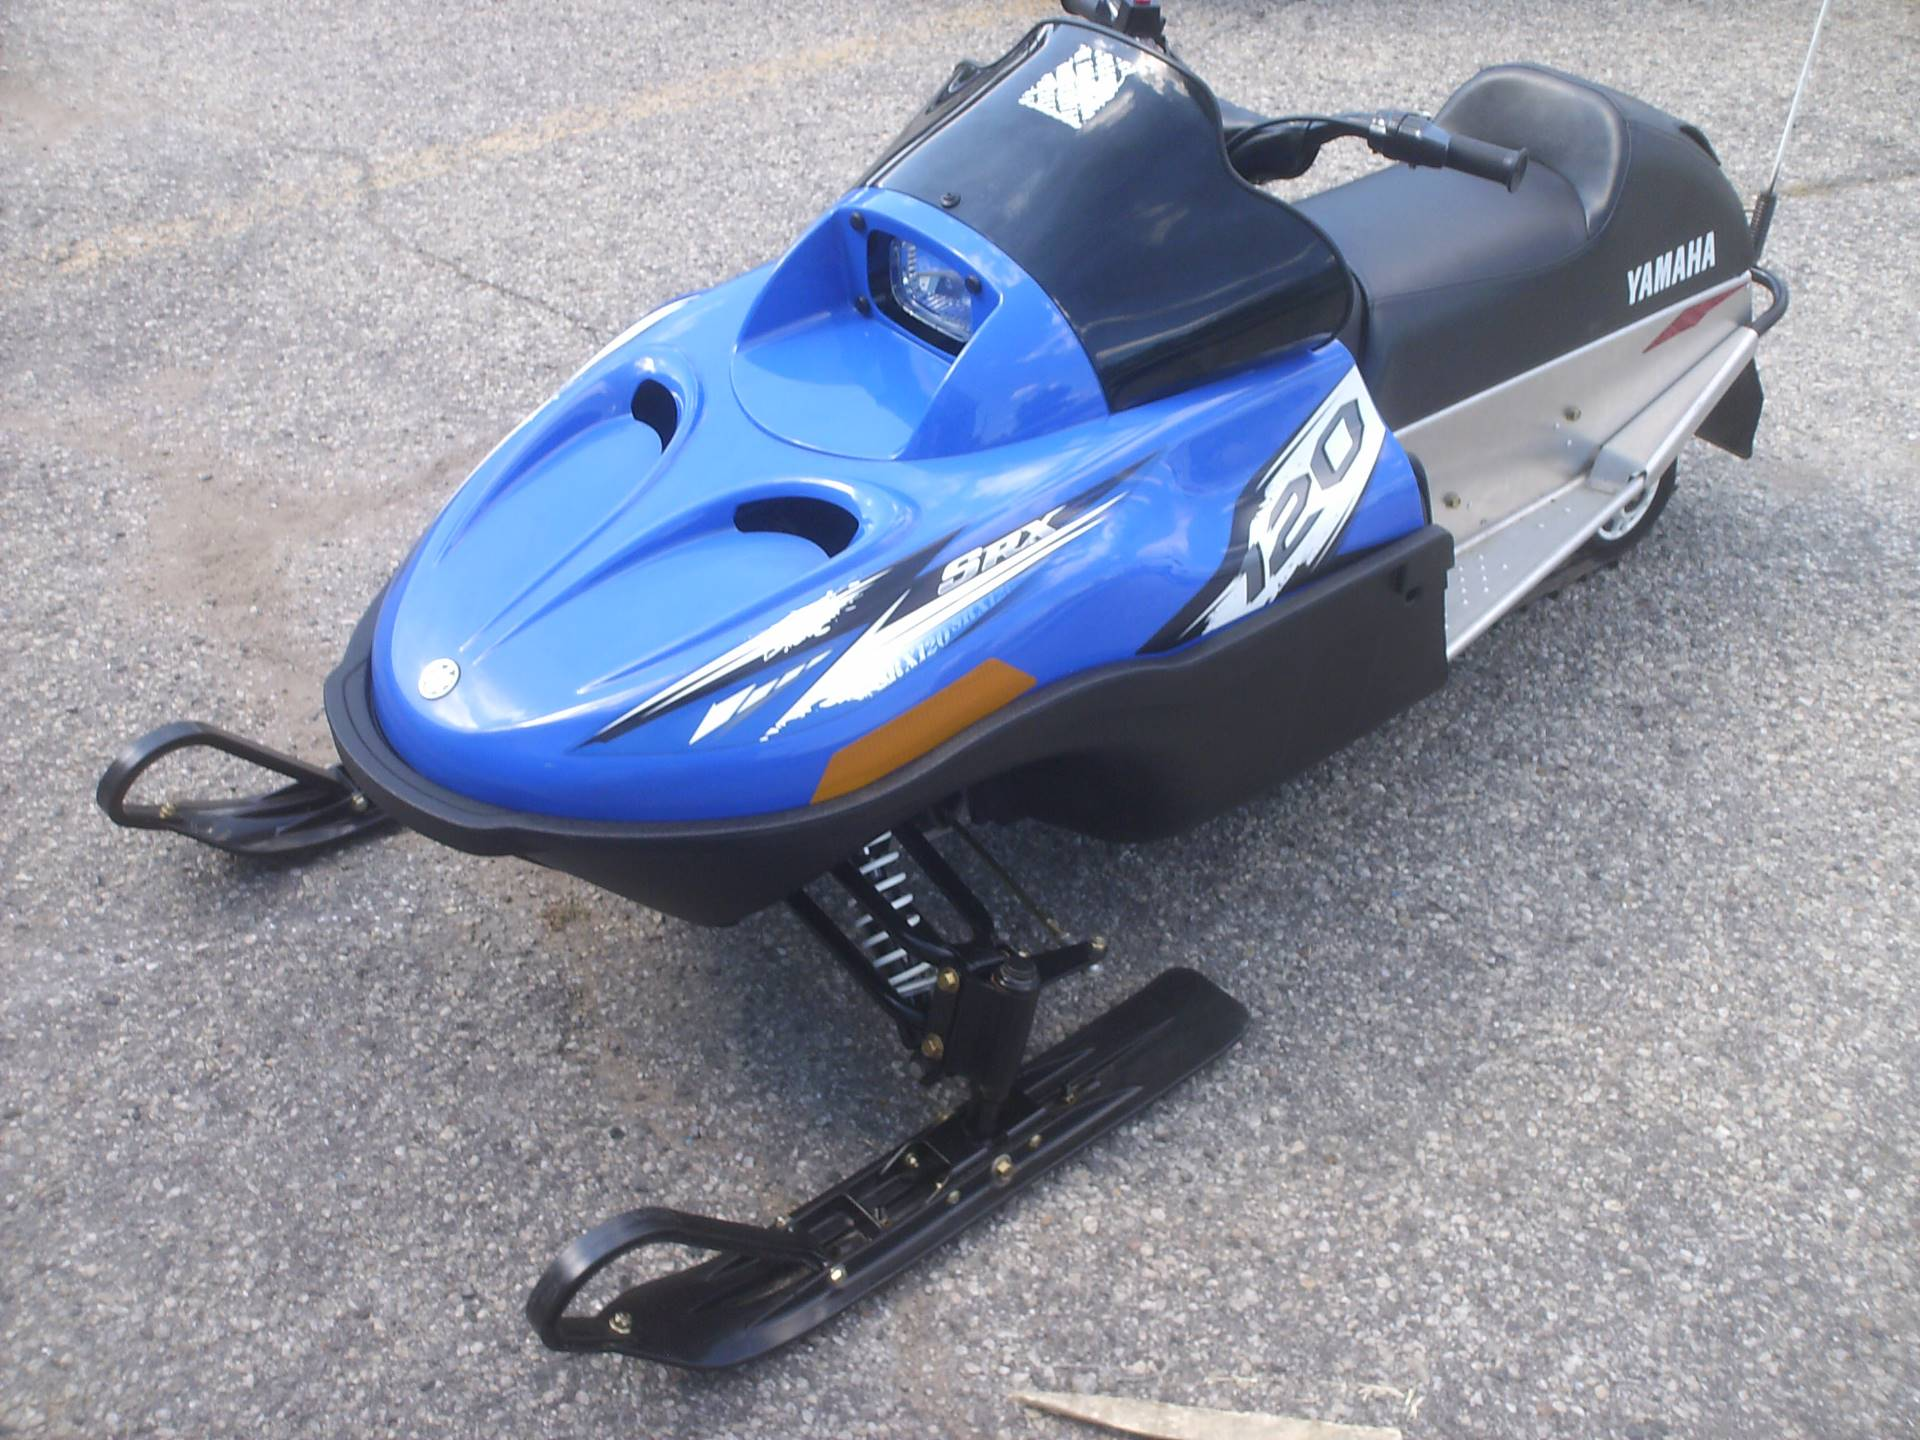 2014 Yamaha SRX® 120 in Mukwonago, Wisconsin - Photo 4